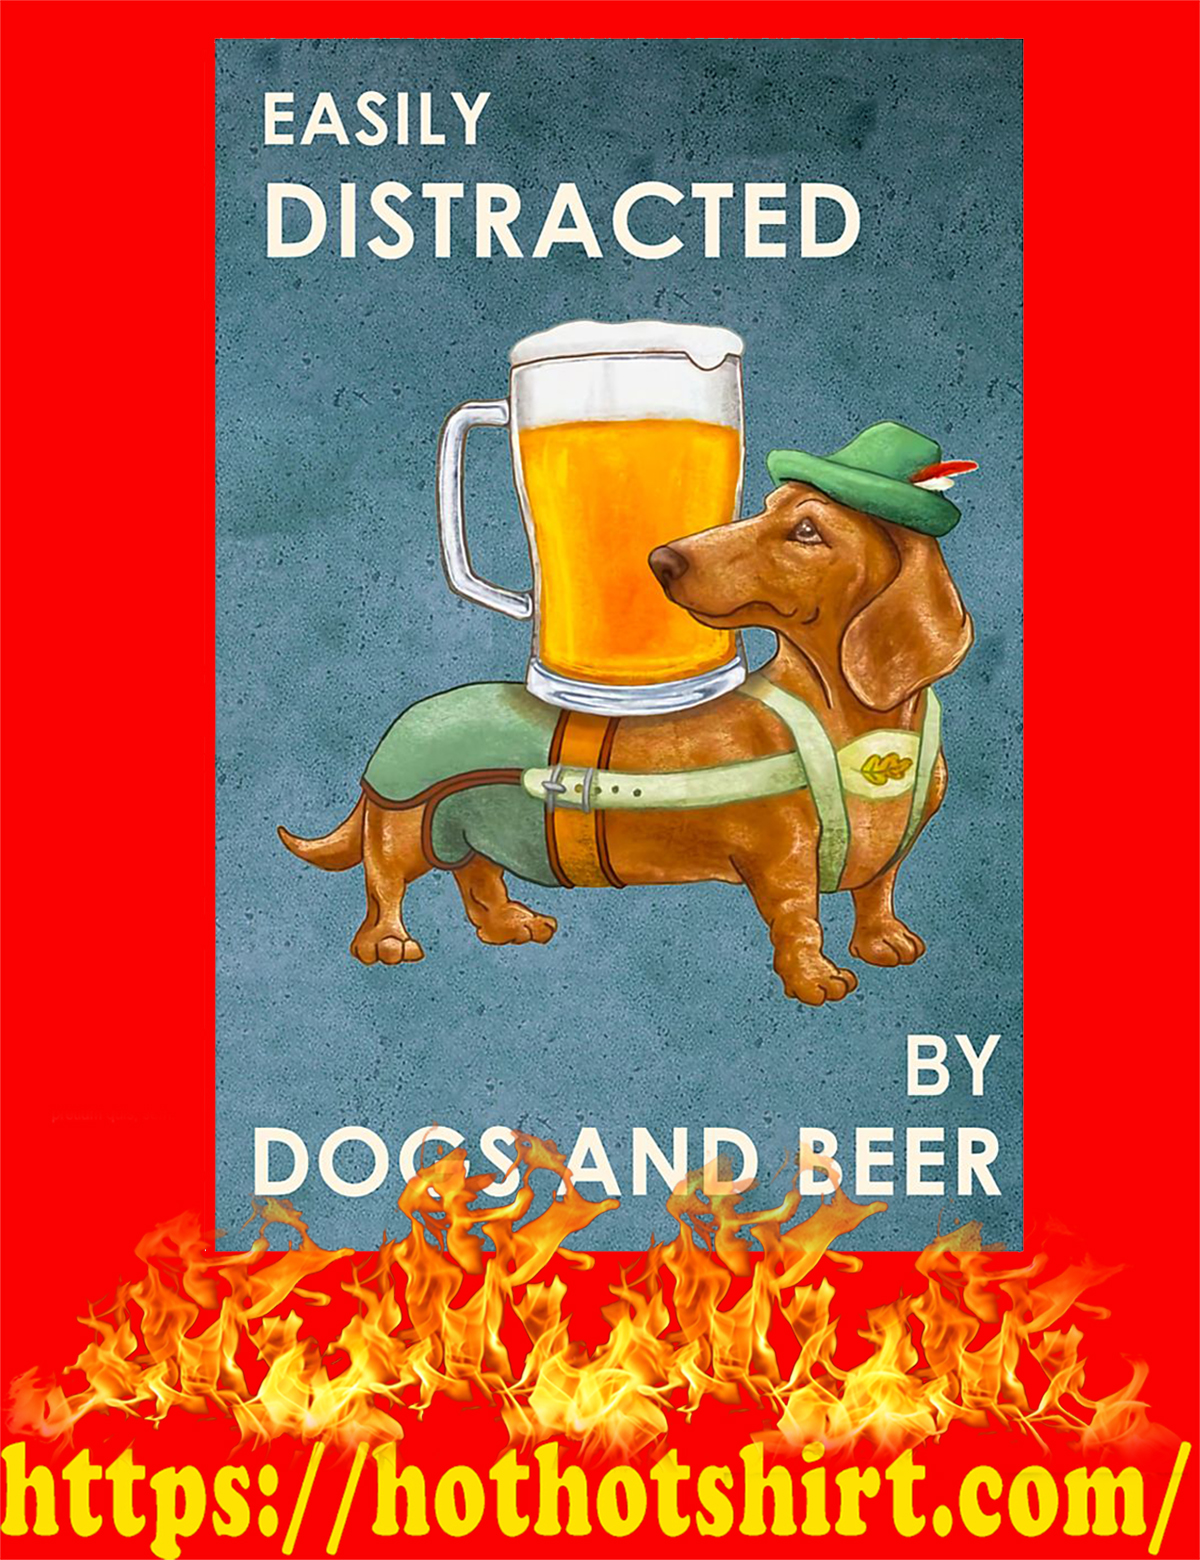 Dachshund Easily distracted by dogs and beer poster - pic 3